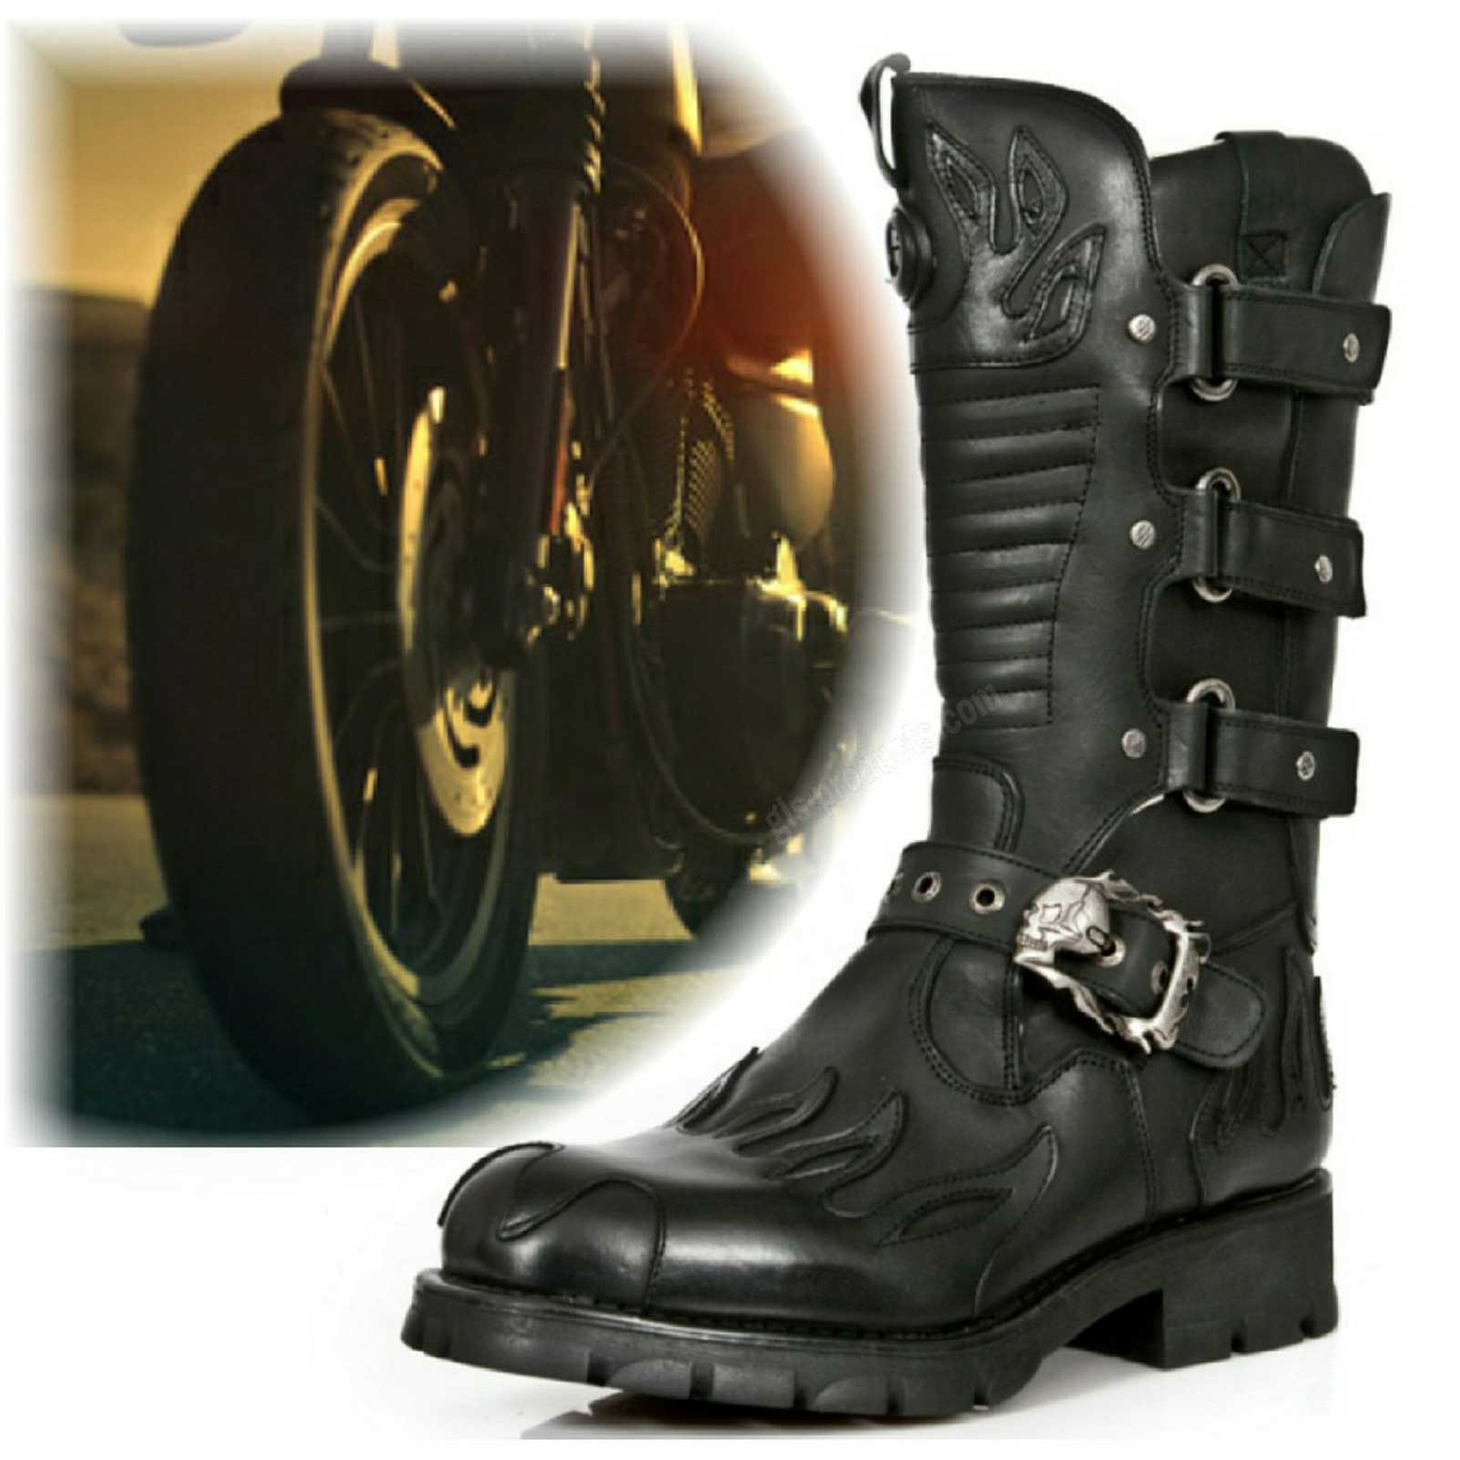 New Rock Biker Boots M 7603-C2 – Picture 1